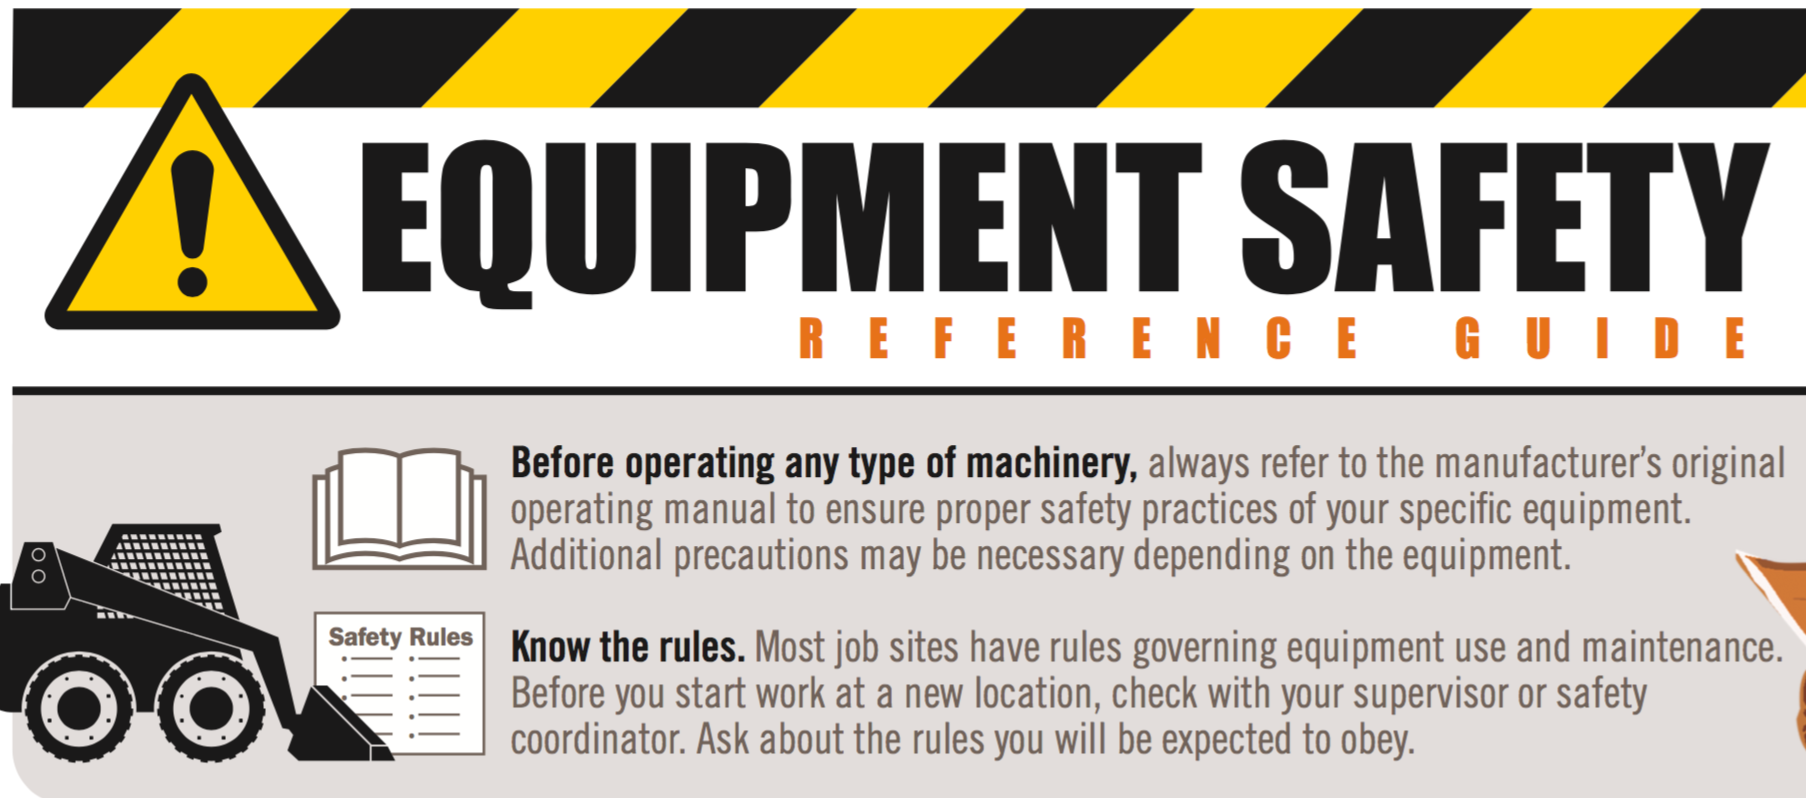 AEM offers an Equipment Safety Infographic poster